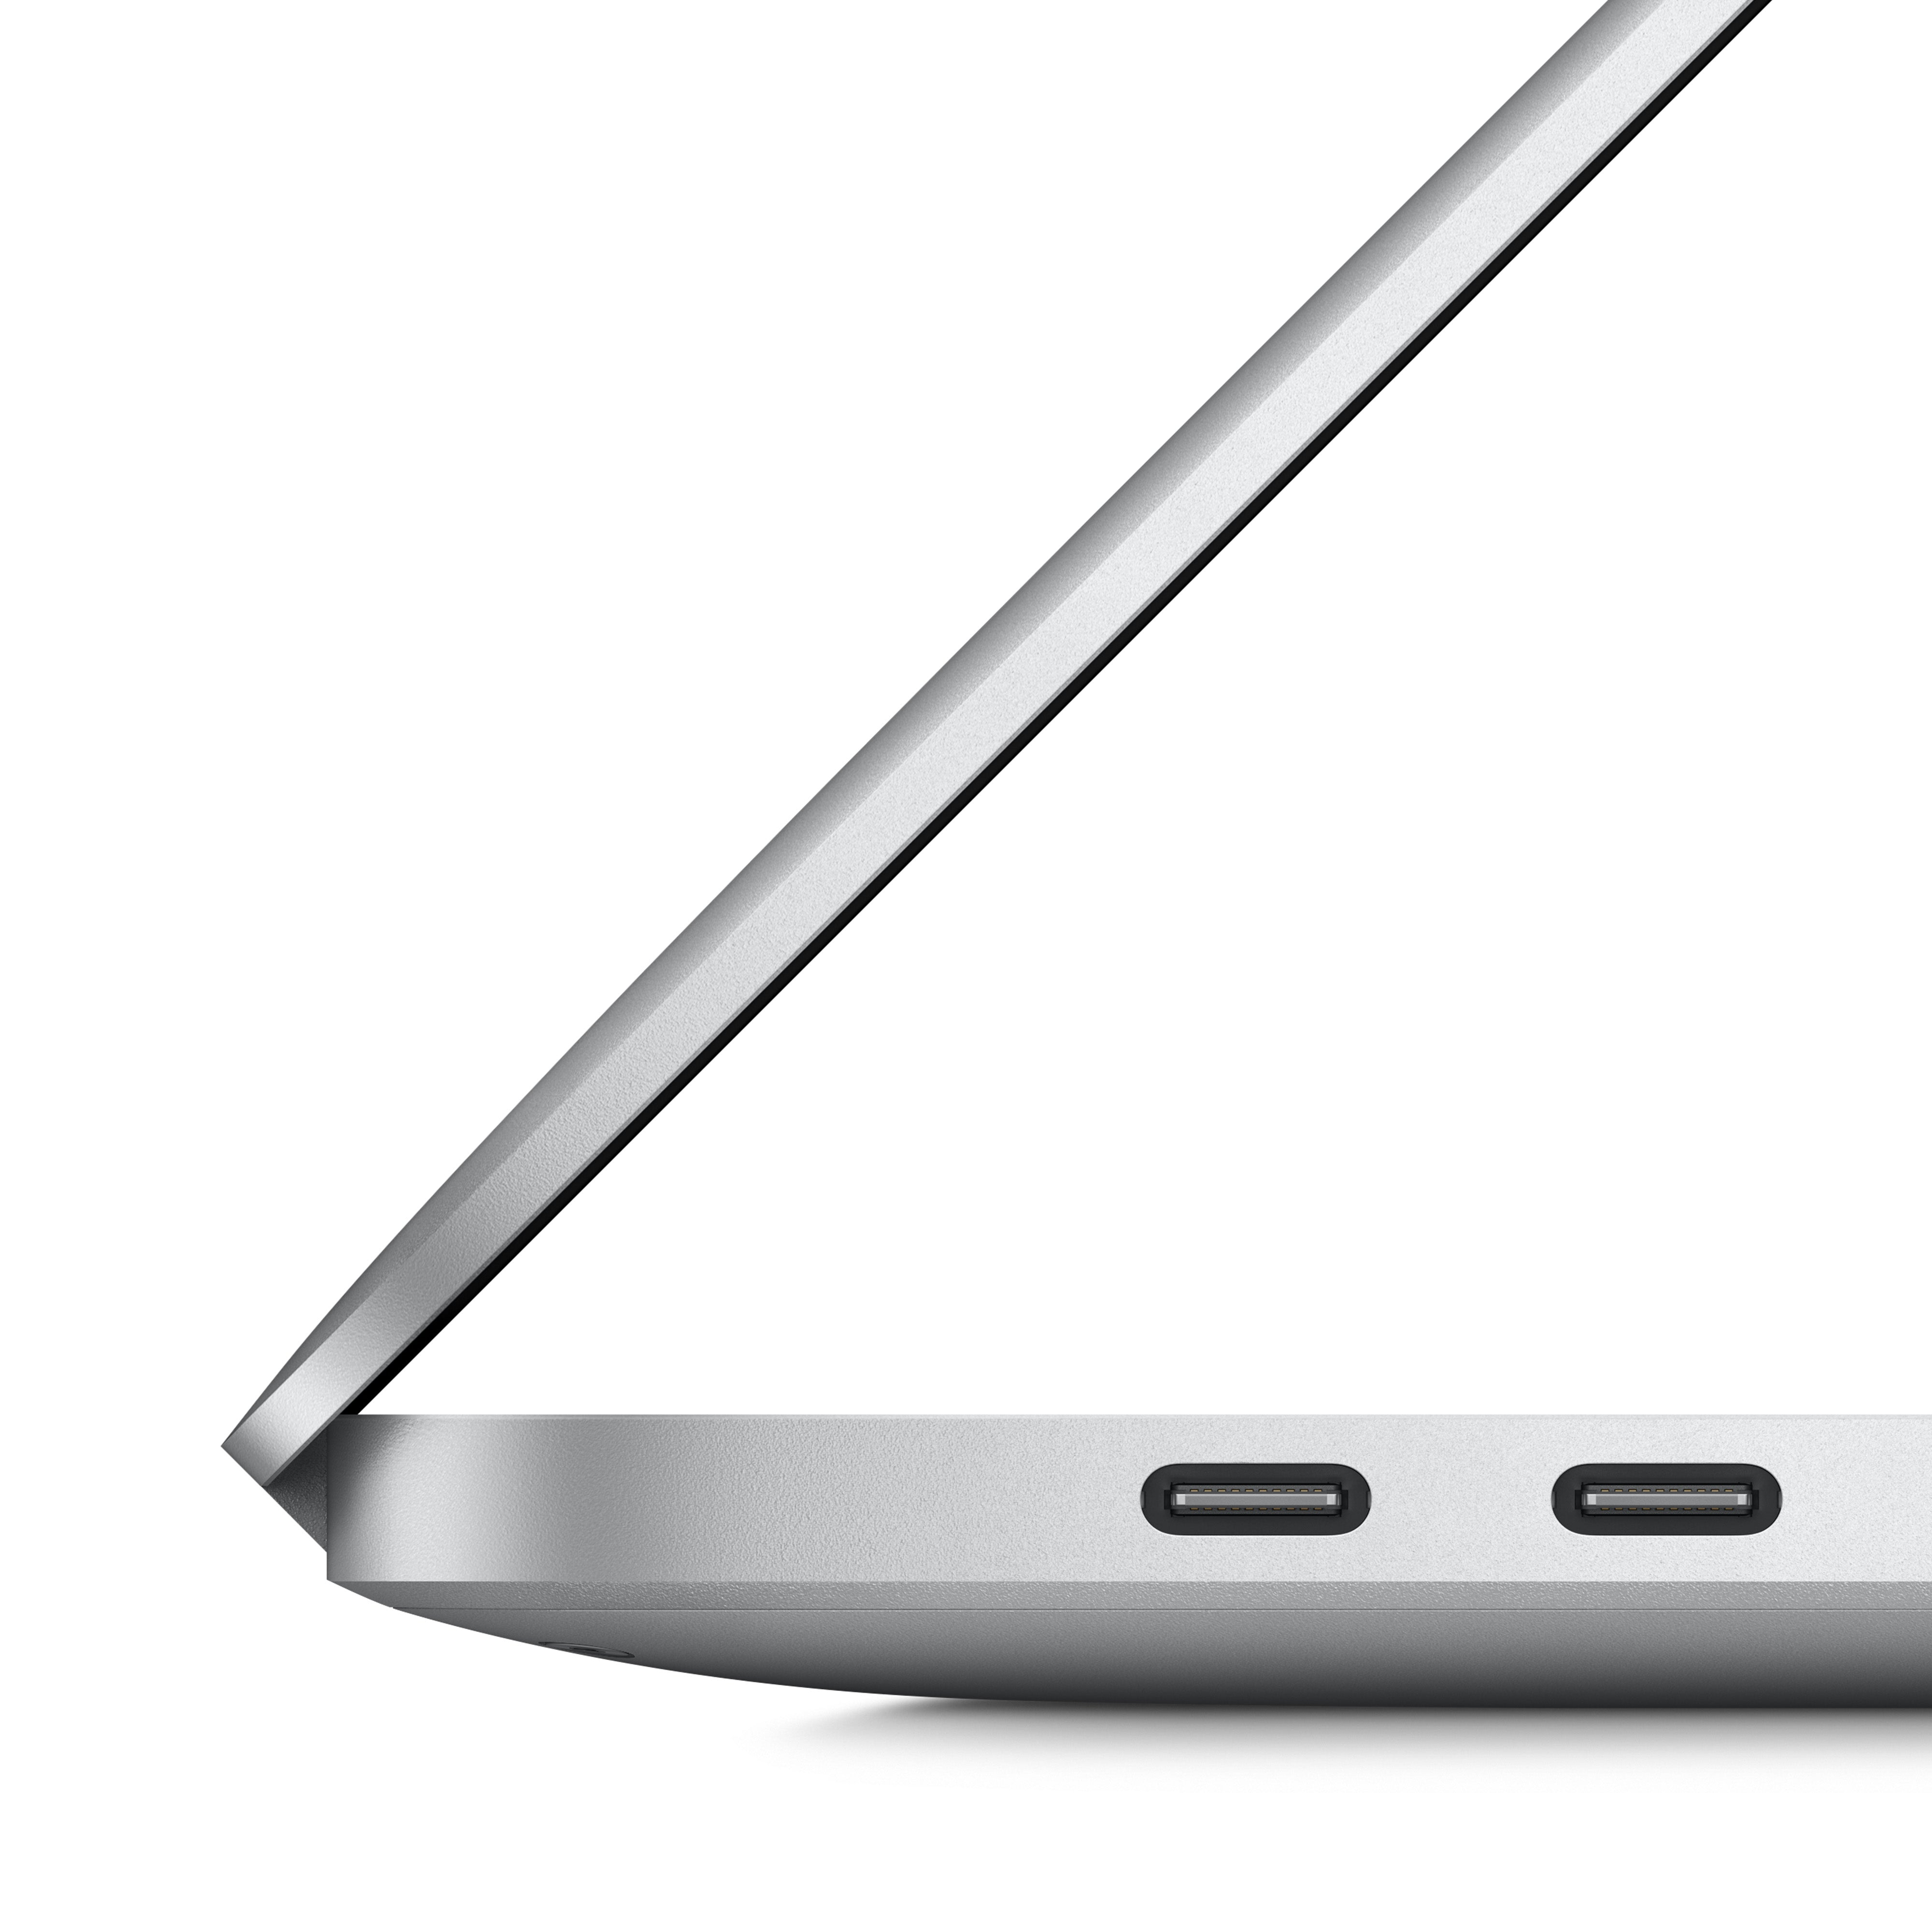 16-inch MacBook Pro (2019 - Special Order - High End)